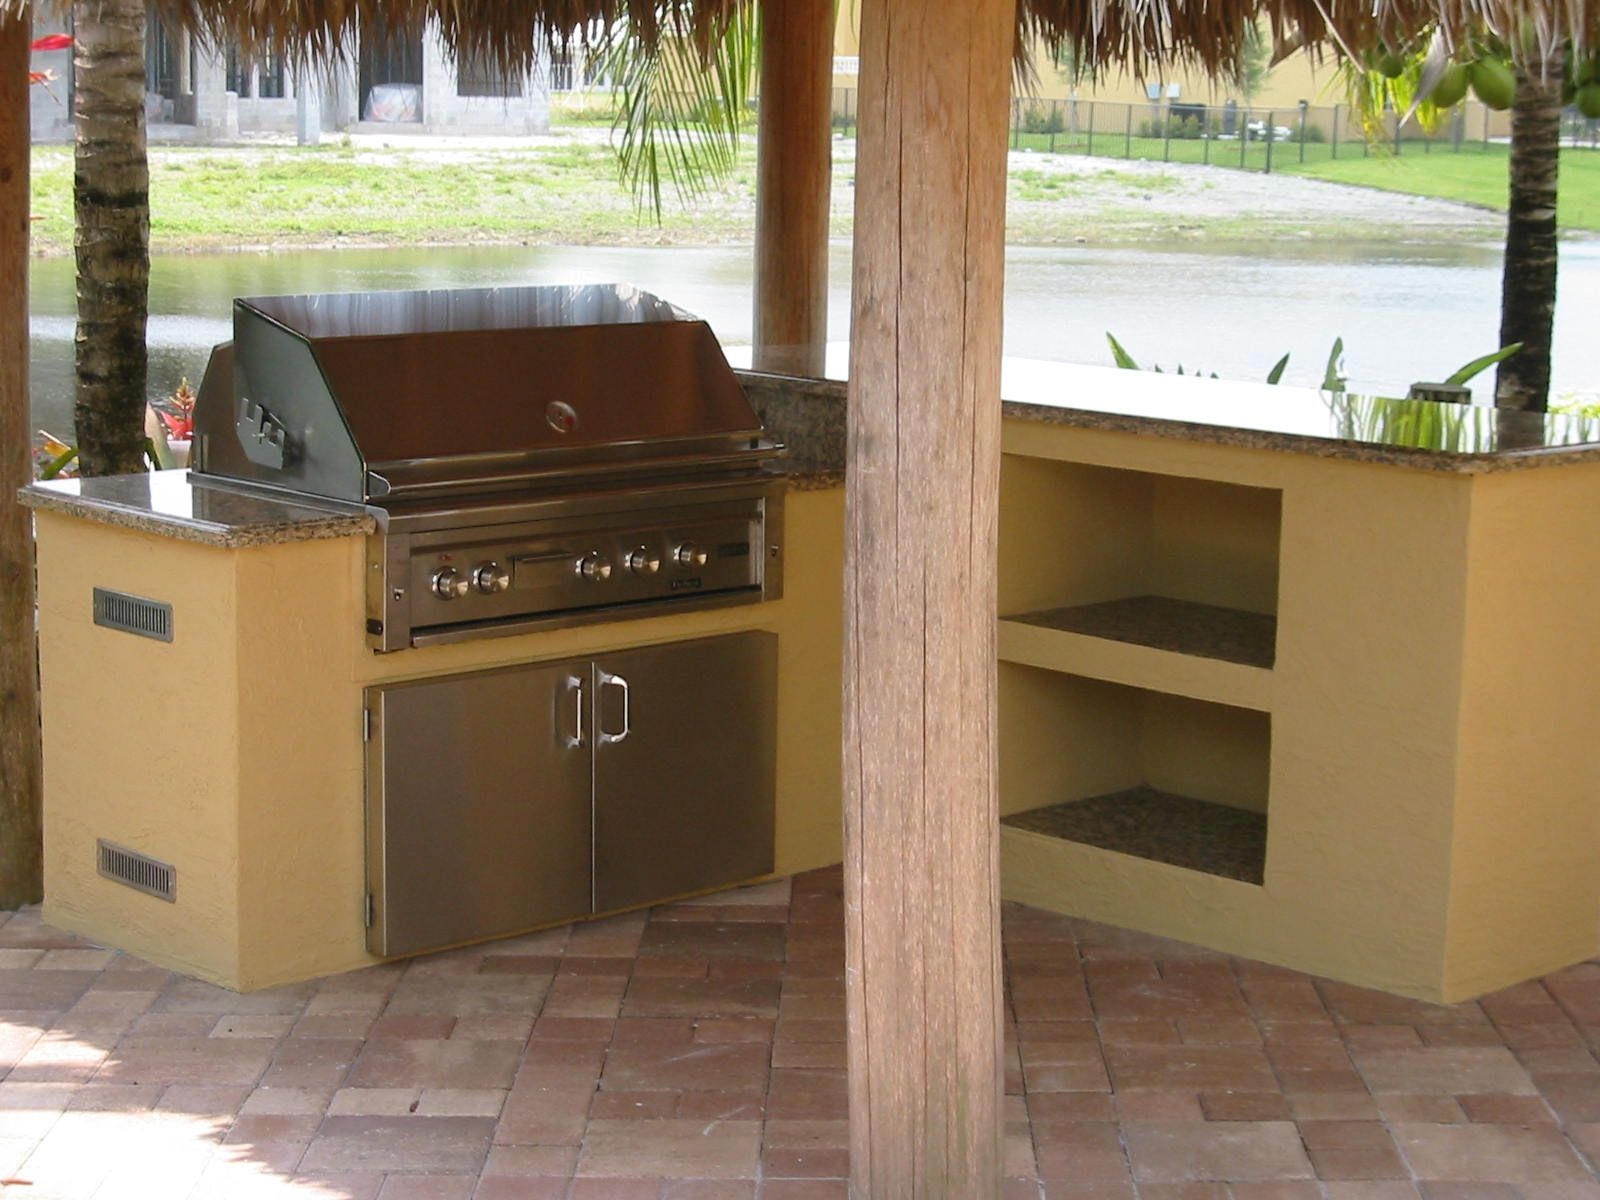 Backyard barbecue ideas lynx built in bbq grill in for Outdoor grill island ideas